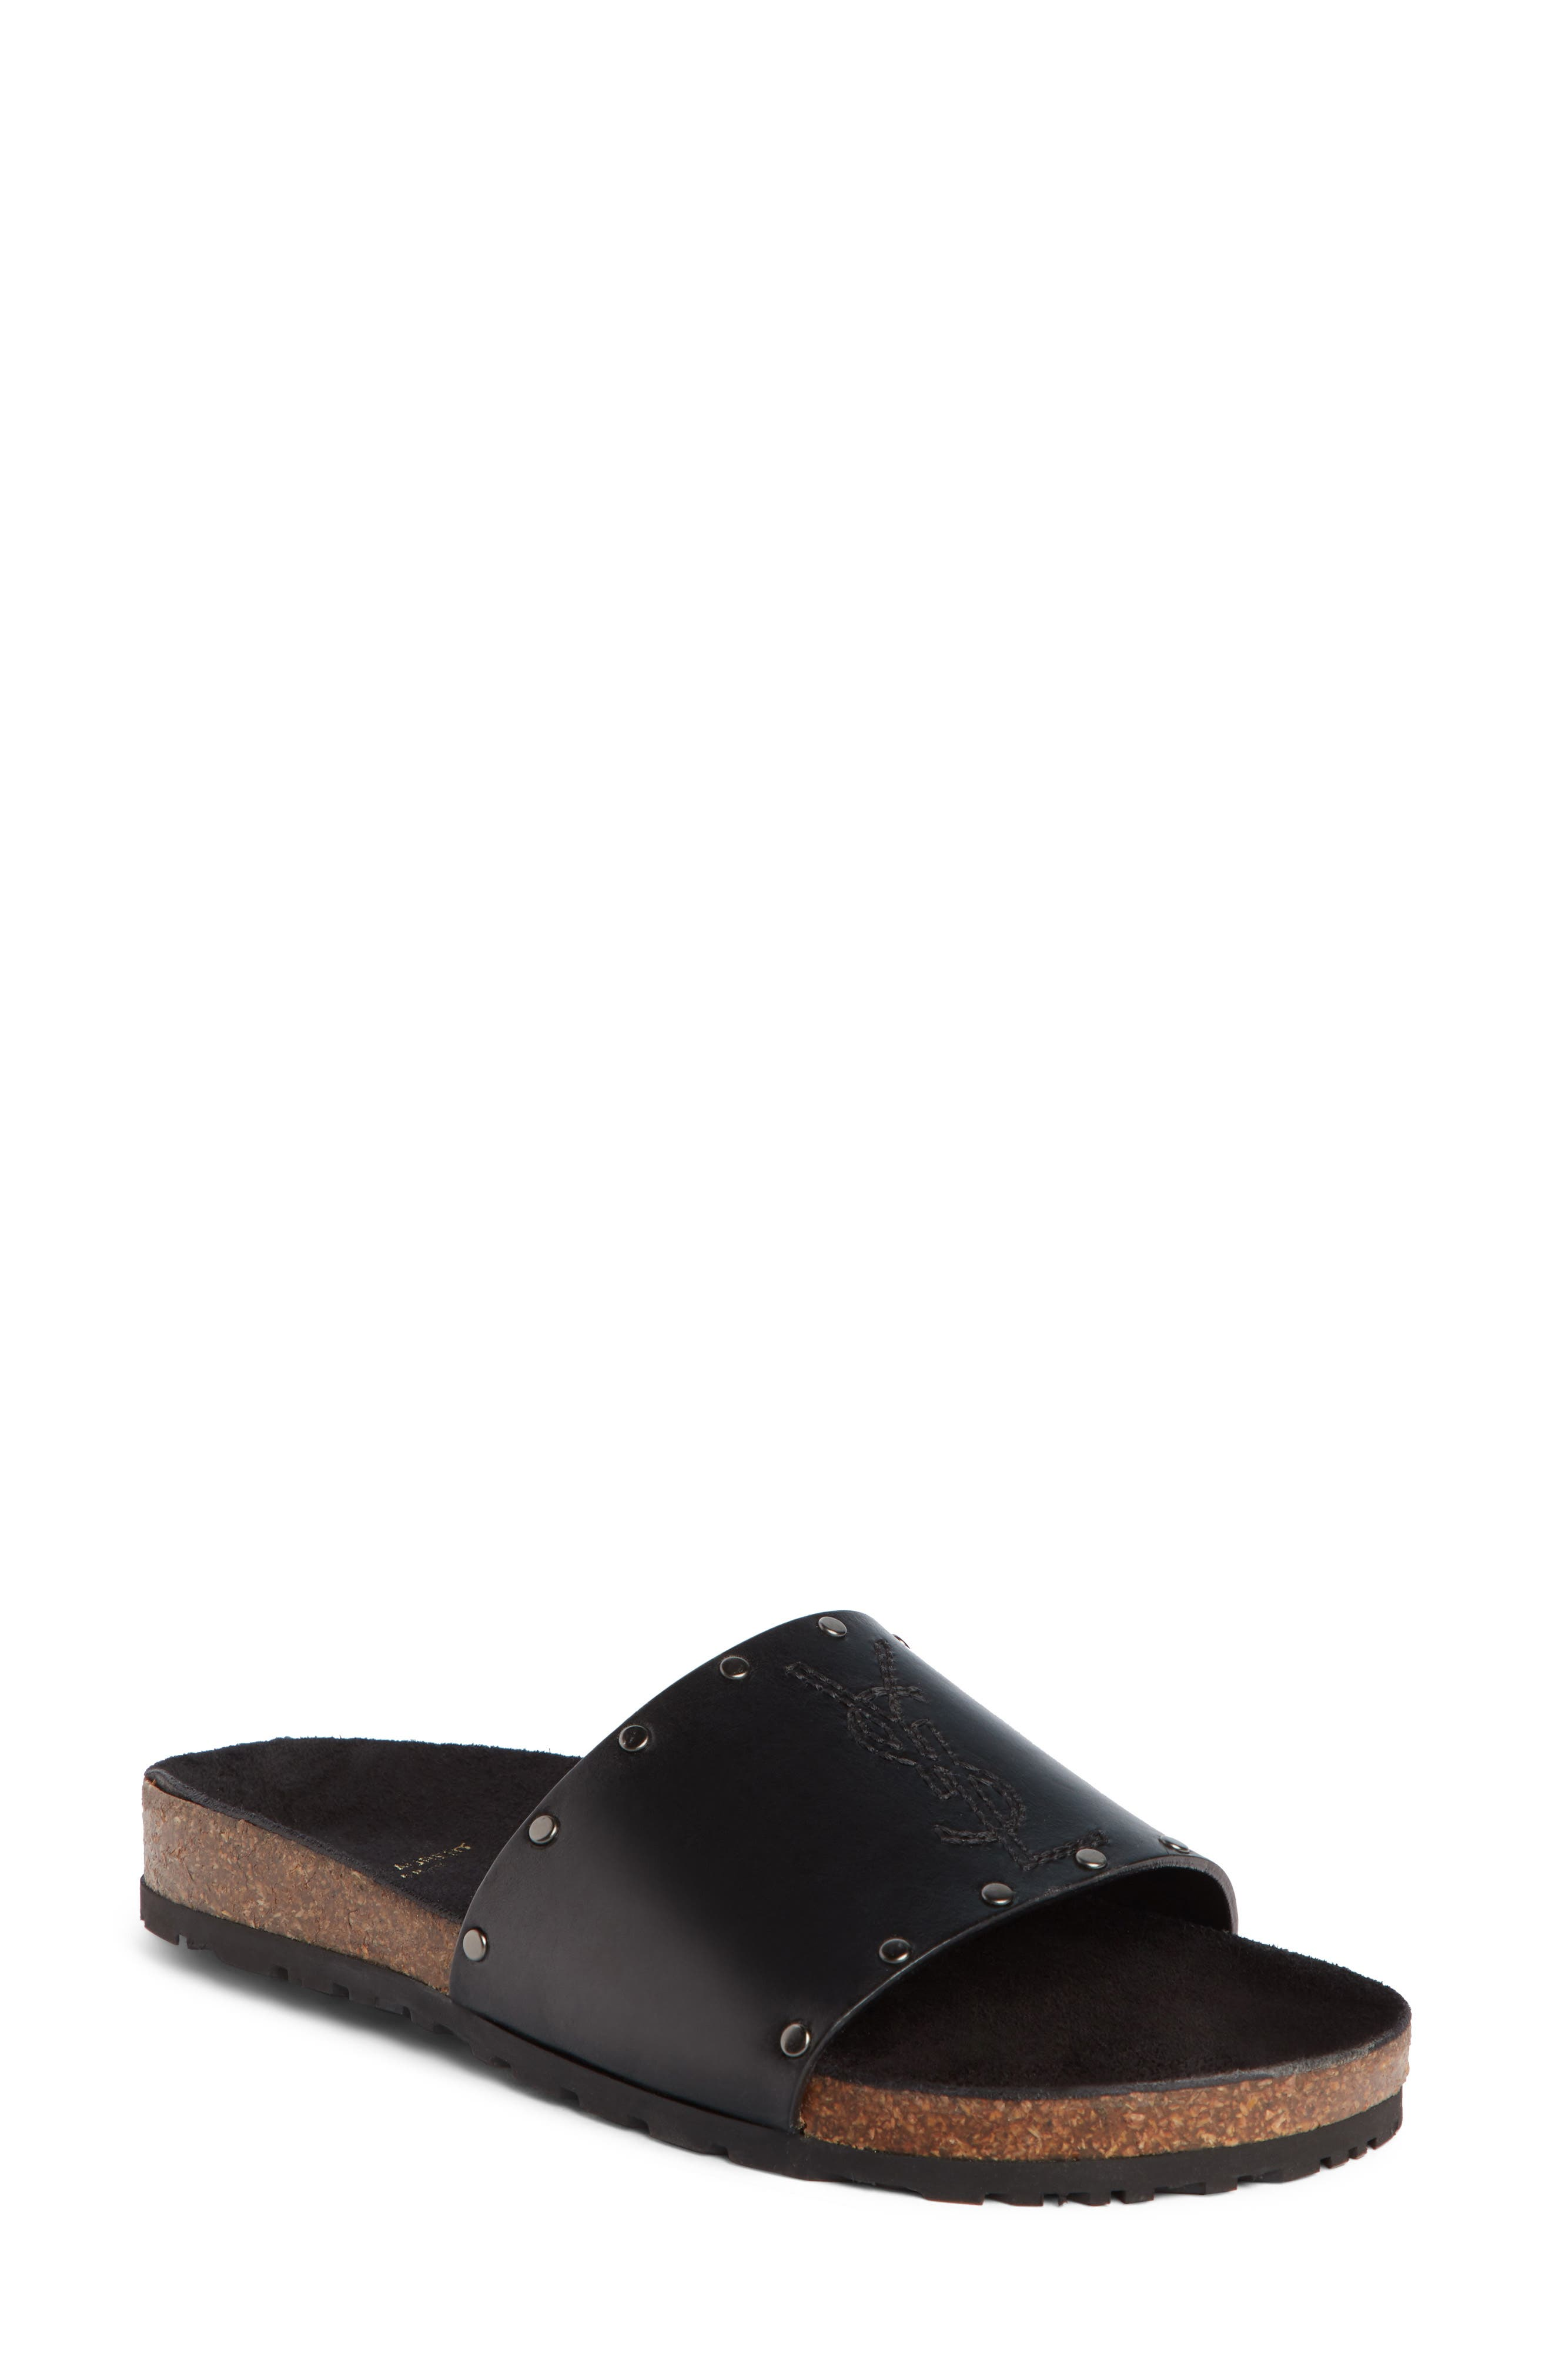 Jimmy Logo Stud Slide Sandal, Main, color, BLACK LEATHER